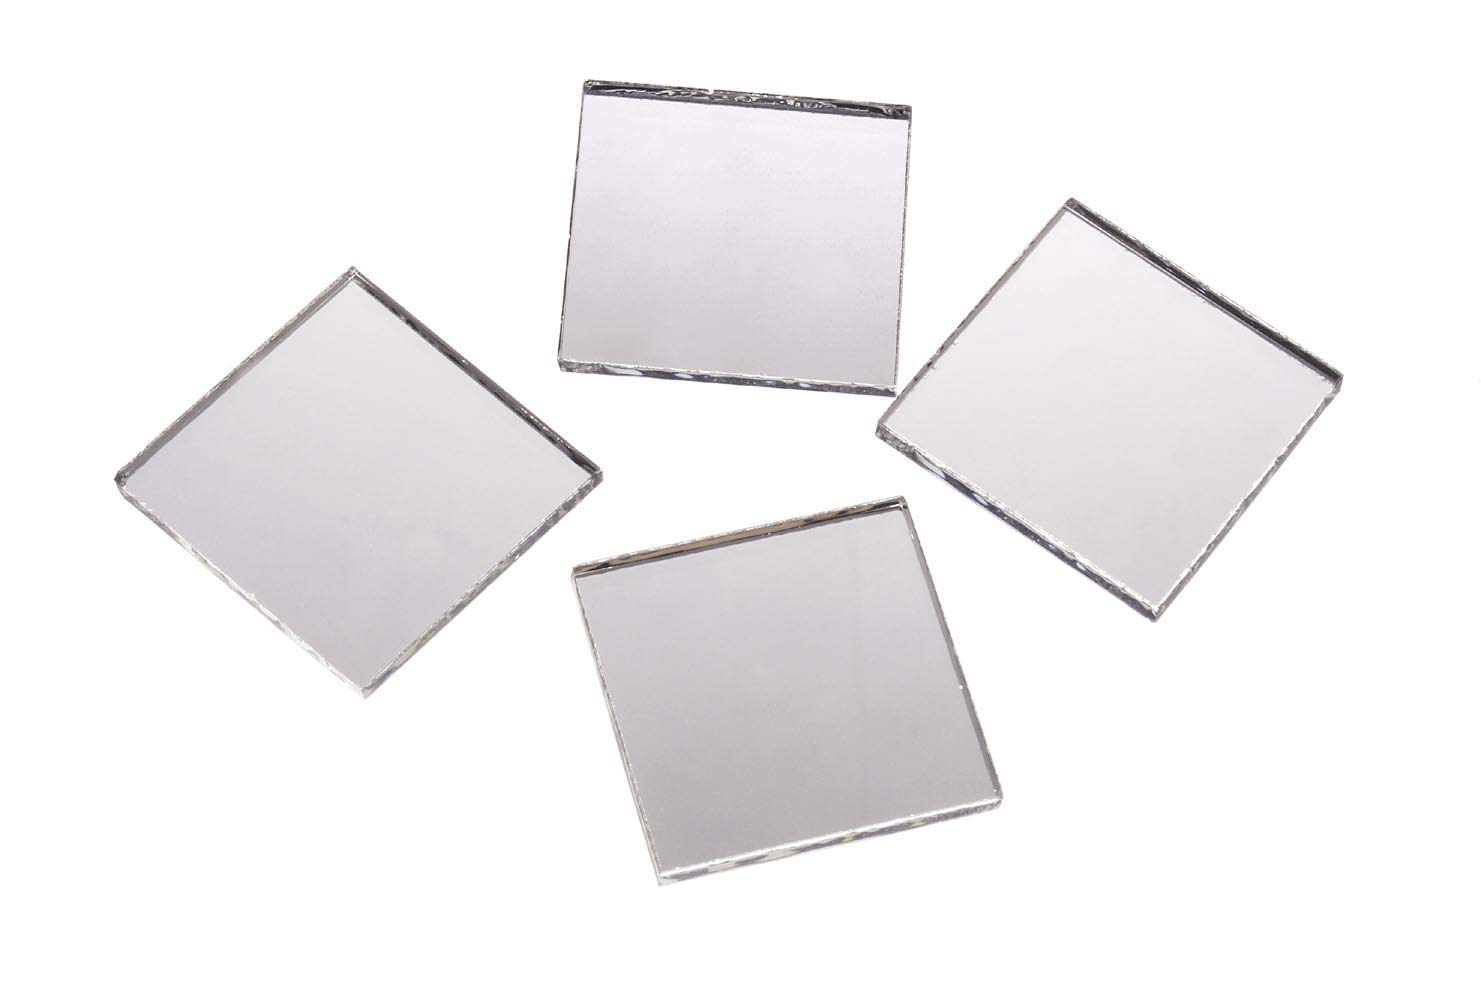 Darice Mirrors Big Value Square 1' 25pc ZIBO ZHAOHAI LIGHT INDUSTRIAL PRO